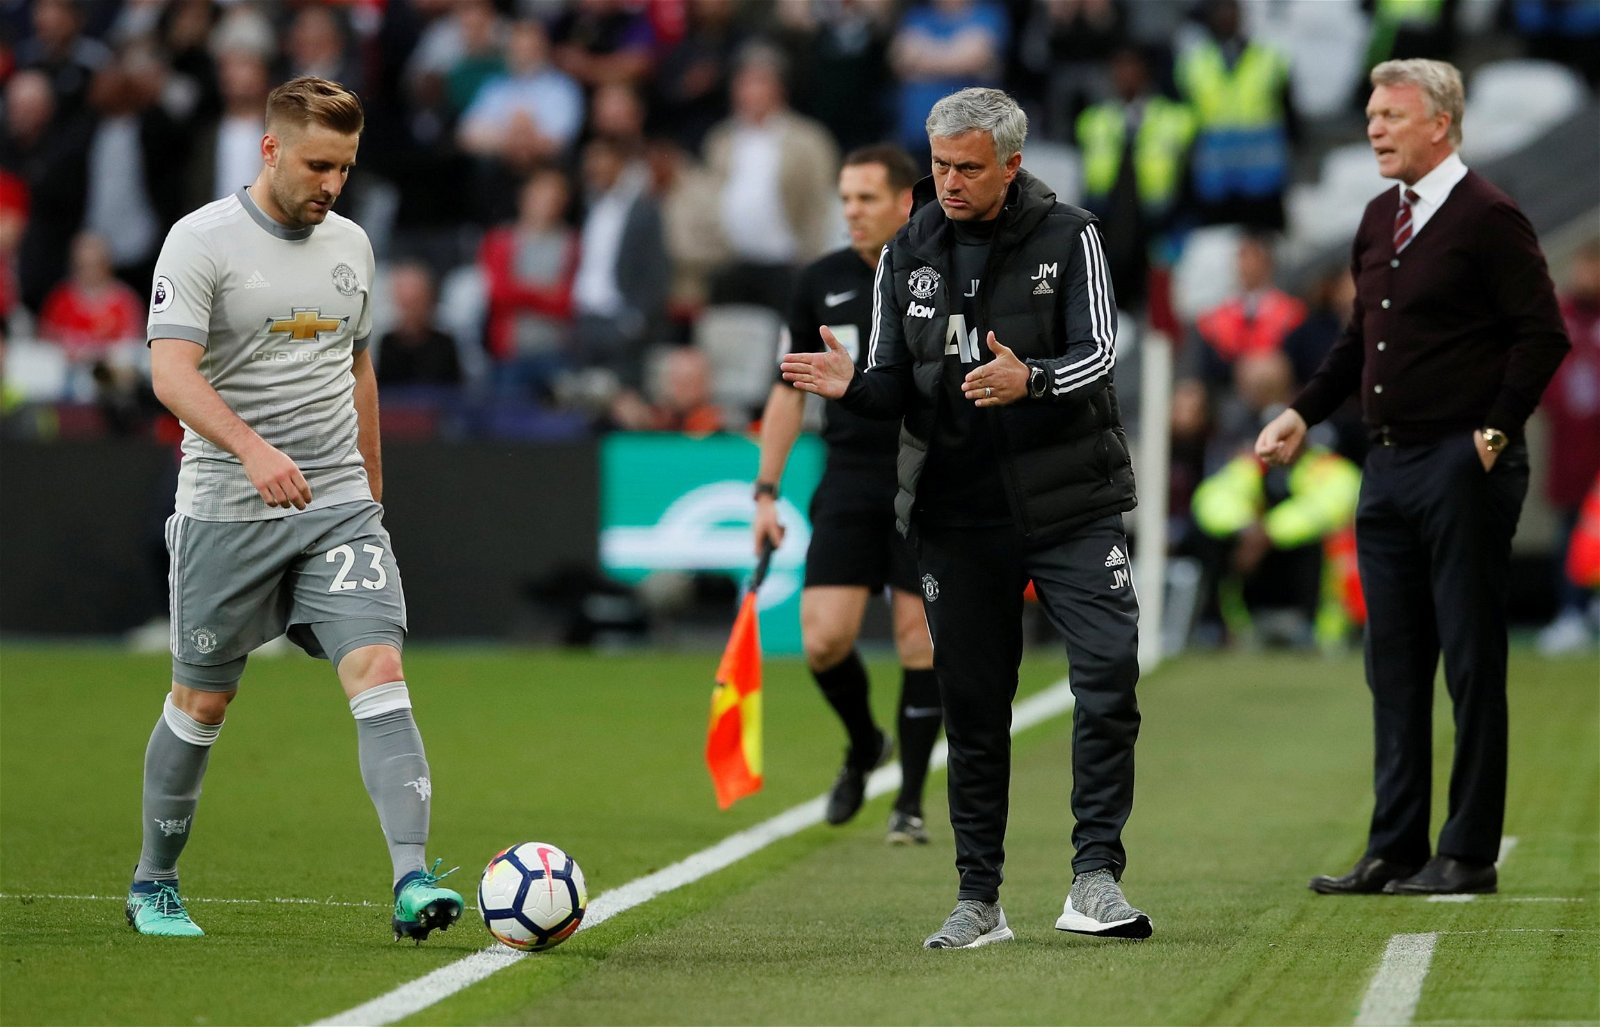 Mourinho looks disappointingly at Luke Shaw